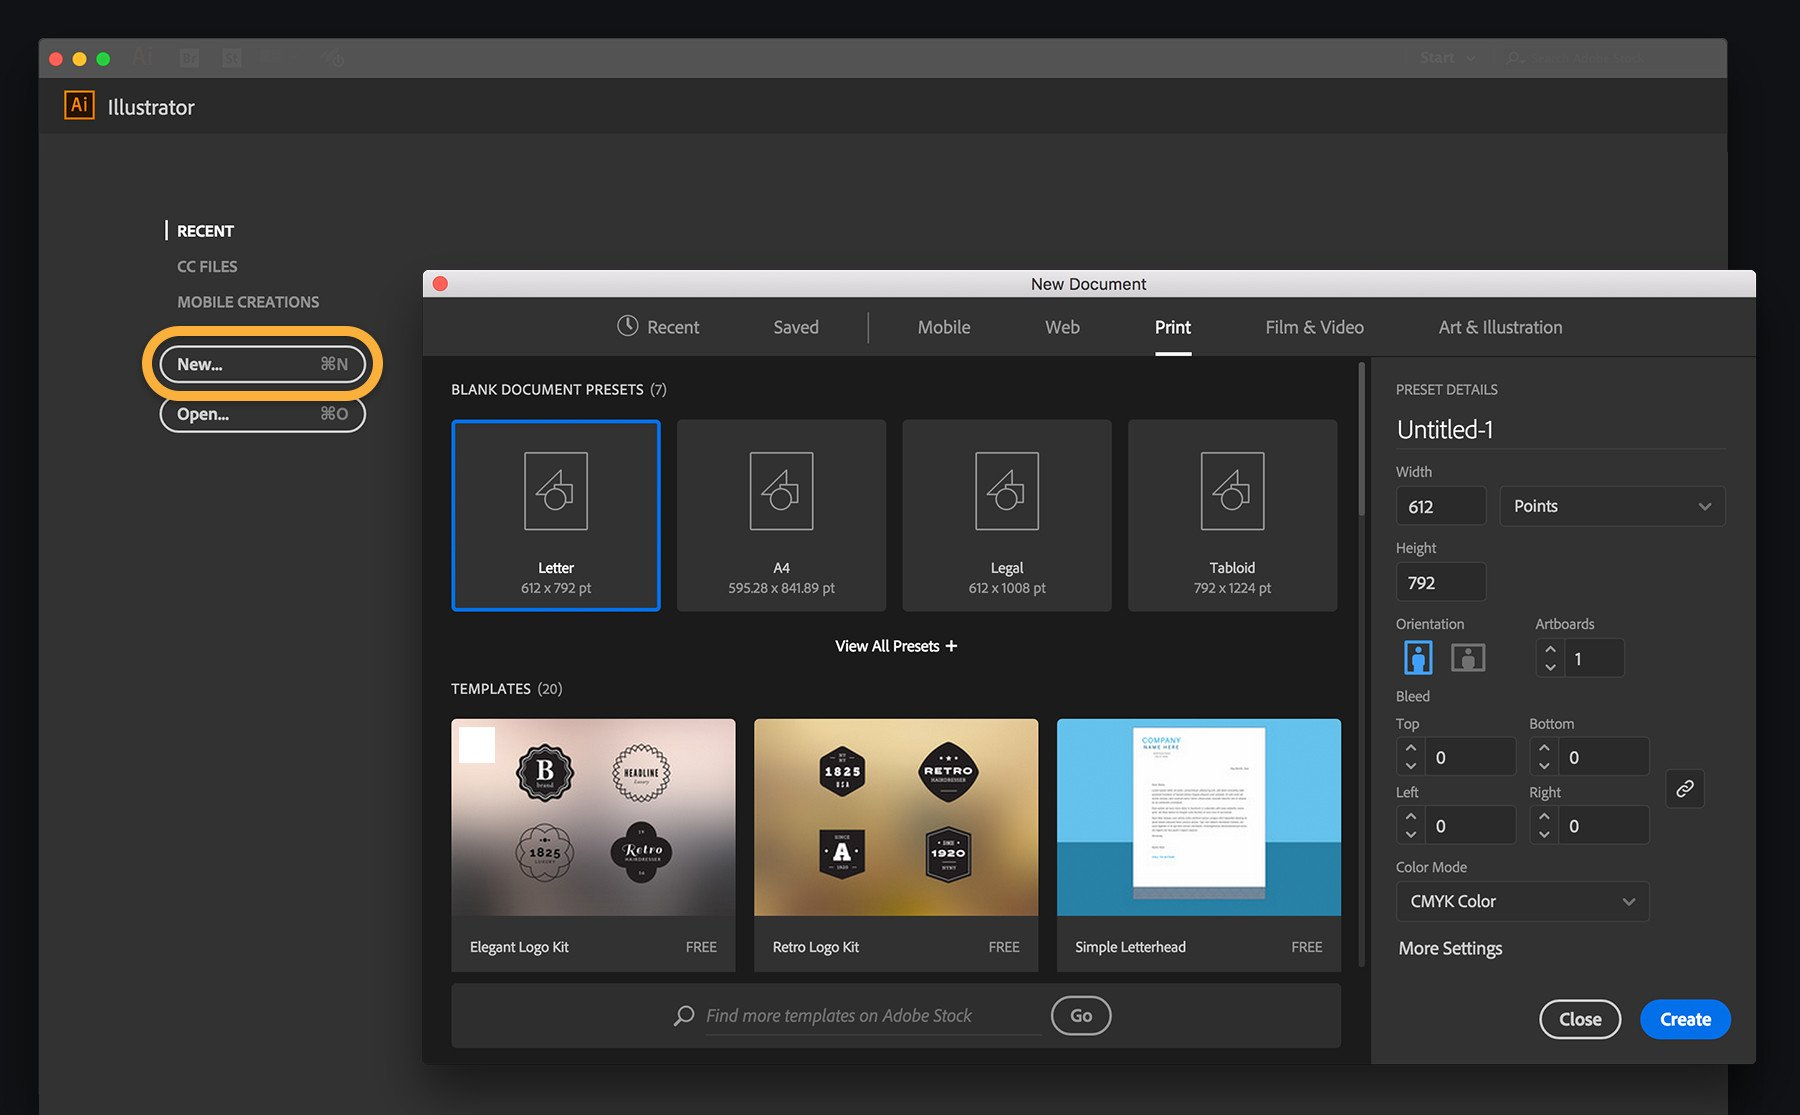 Free Adobe Illustrator Templates Customize An Illustrator Template today